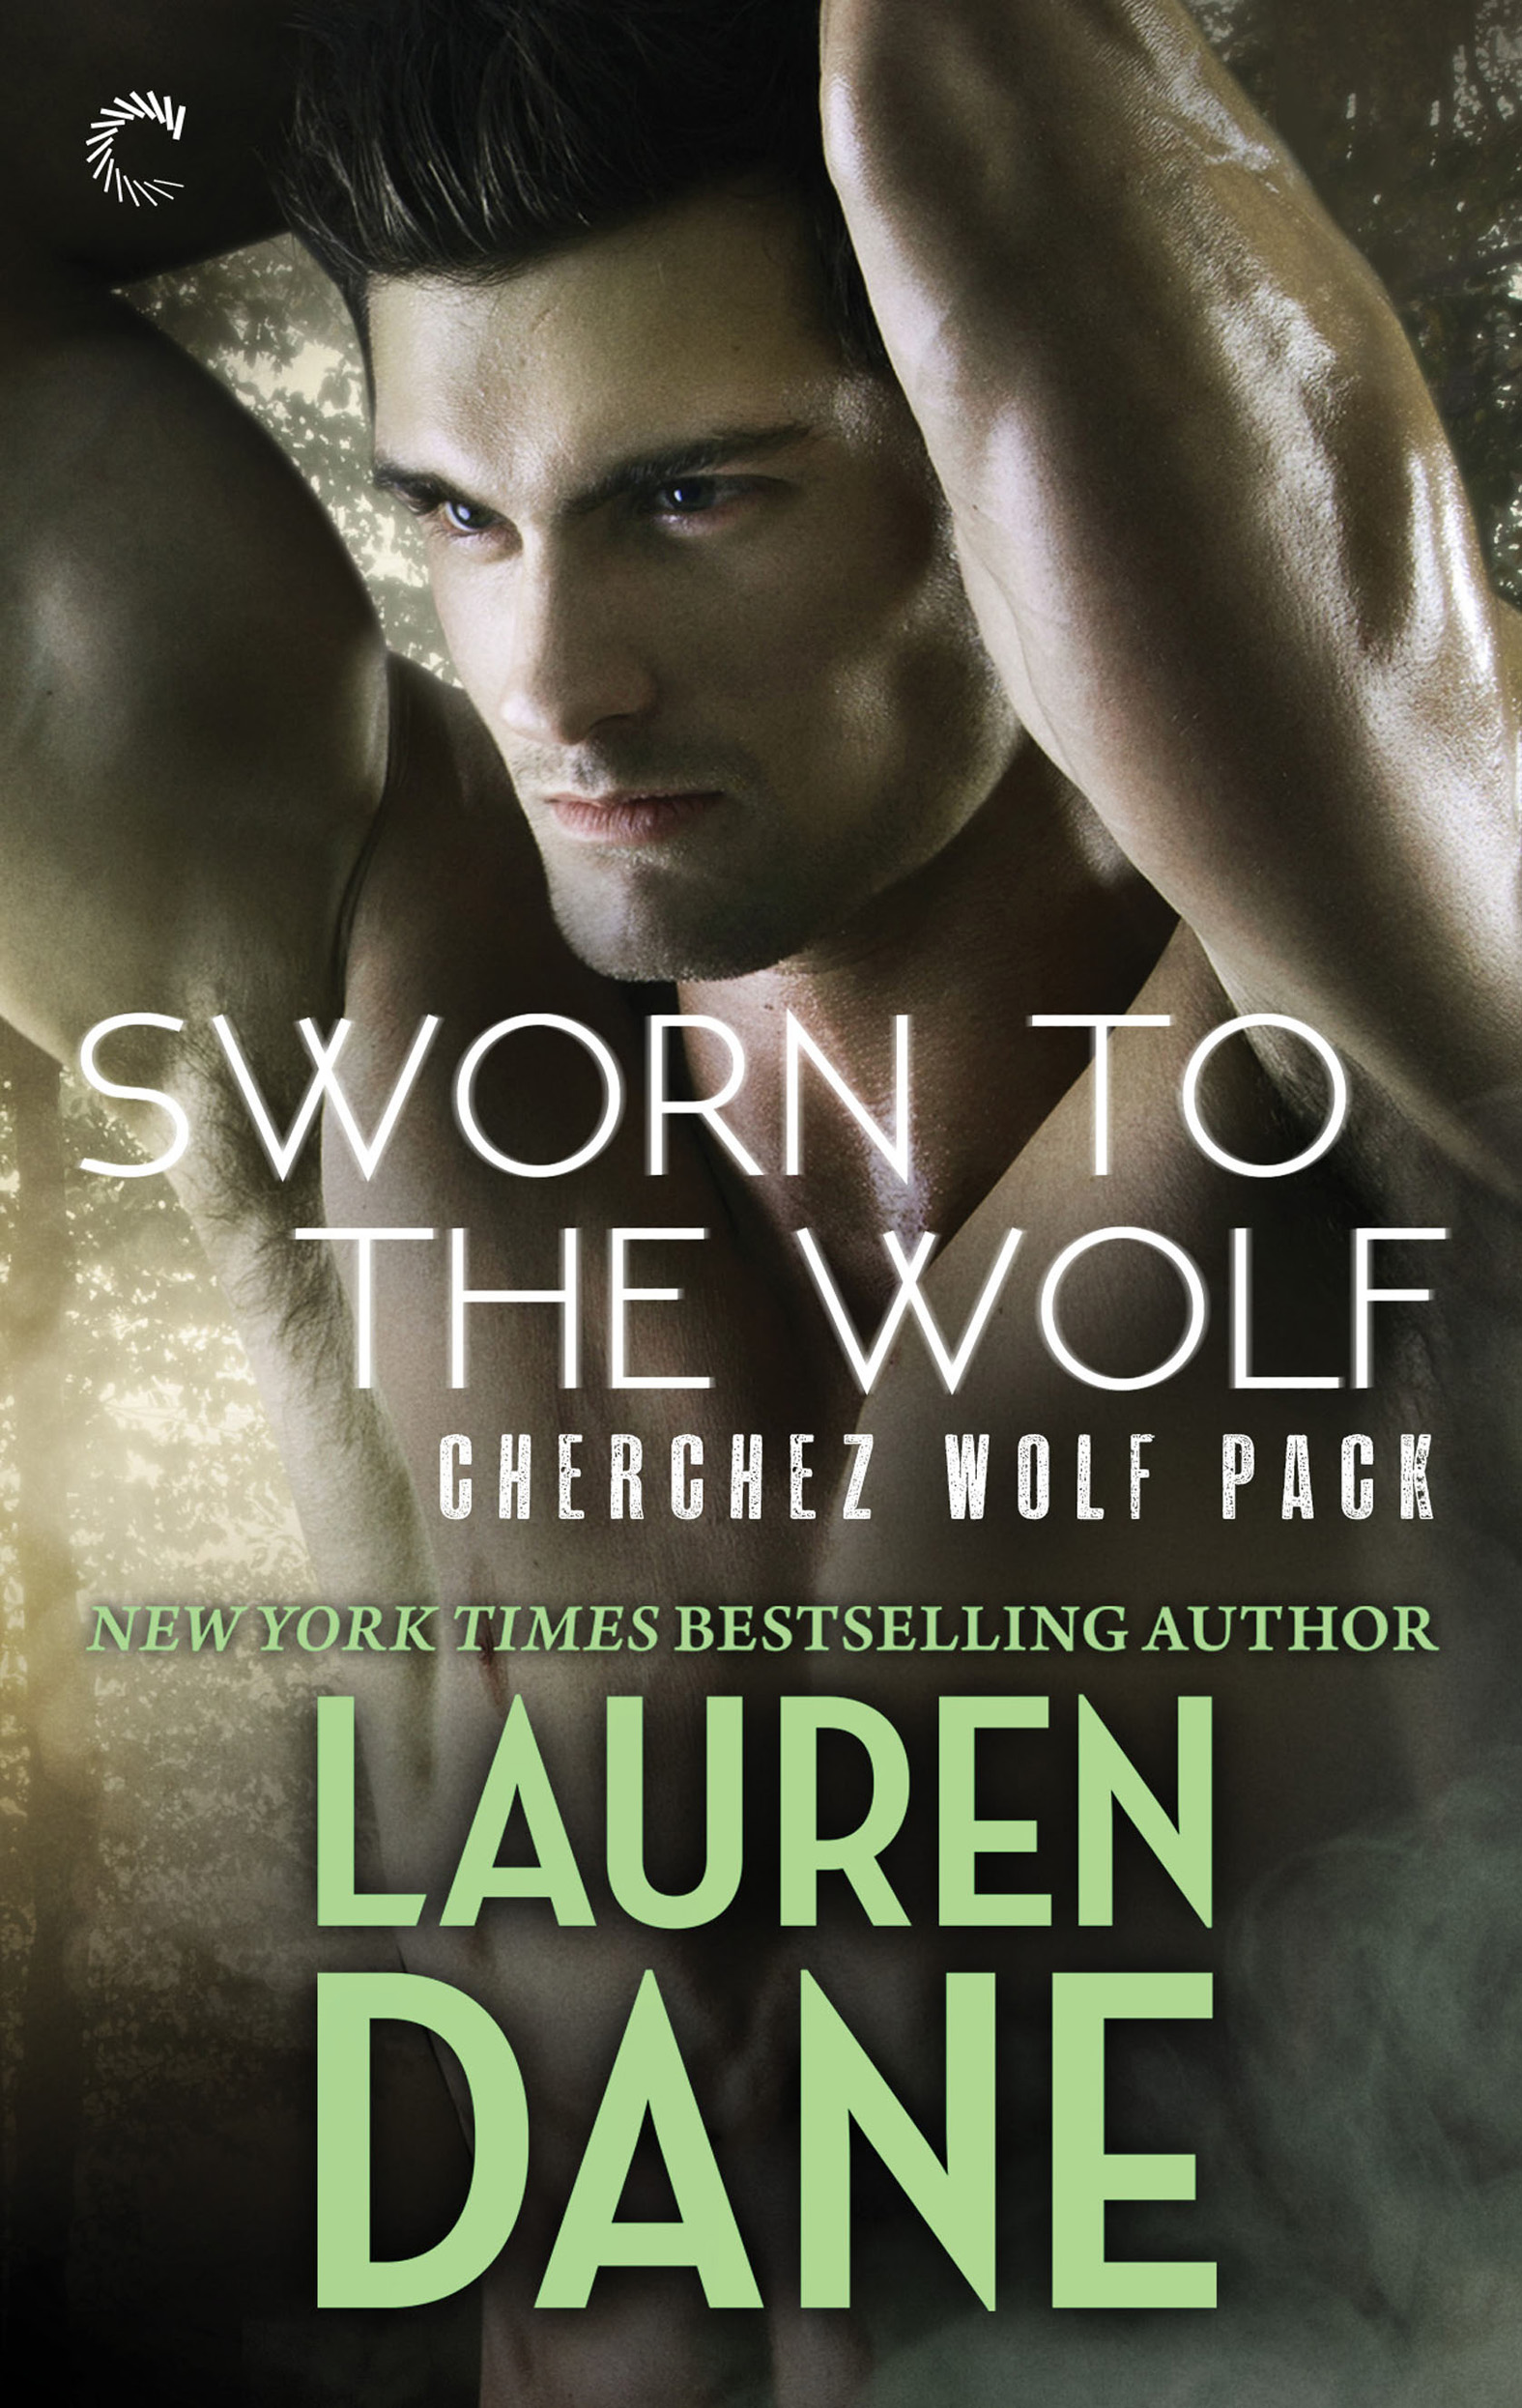 Sworn to the Wolf (2016) by Lauren Dane